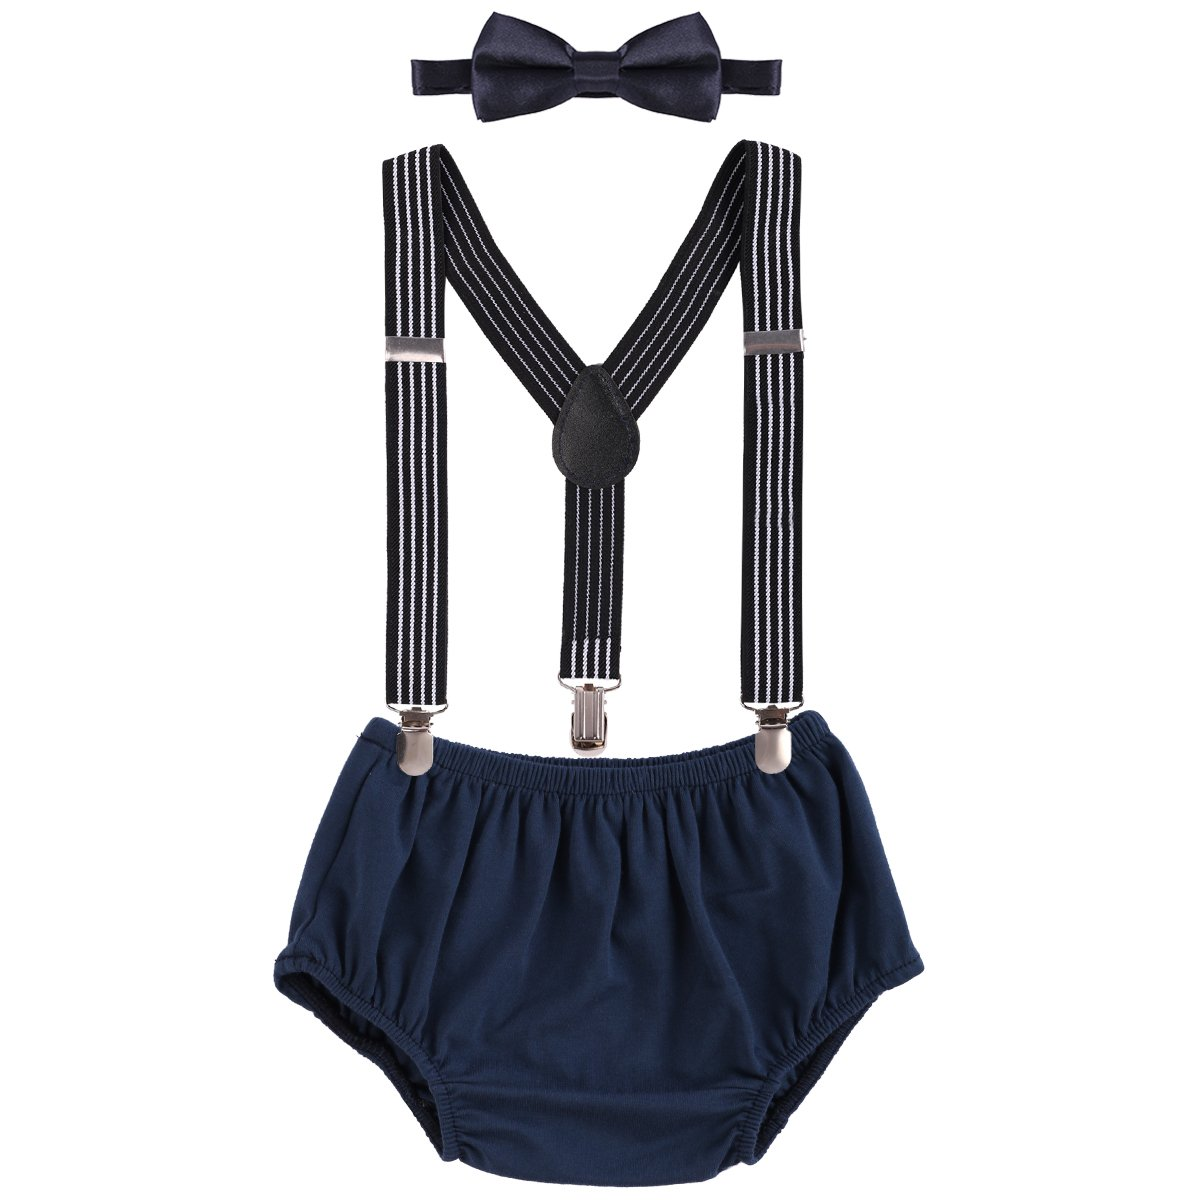 Child Baby Boys Adjustable Elastic Clip Y Back Suspenders Bowtie Outfit First Birthday Cake Smash Bloomers Clothes set by IWEMEK